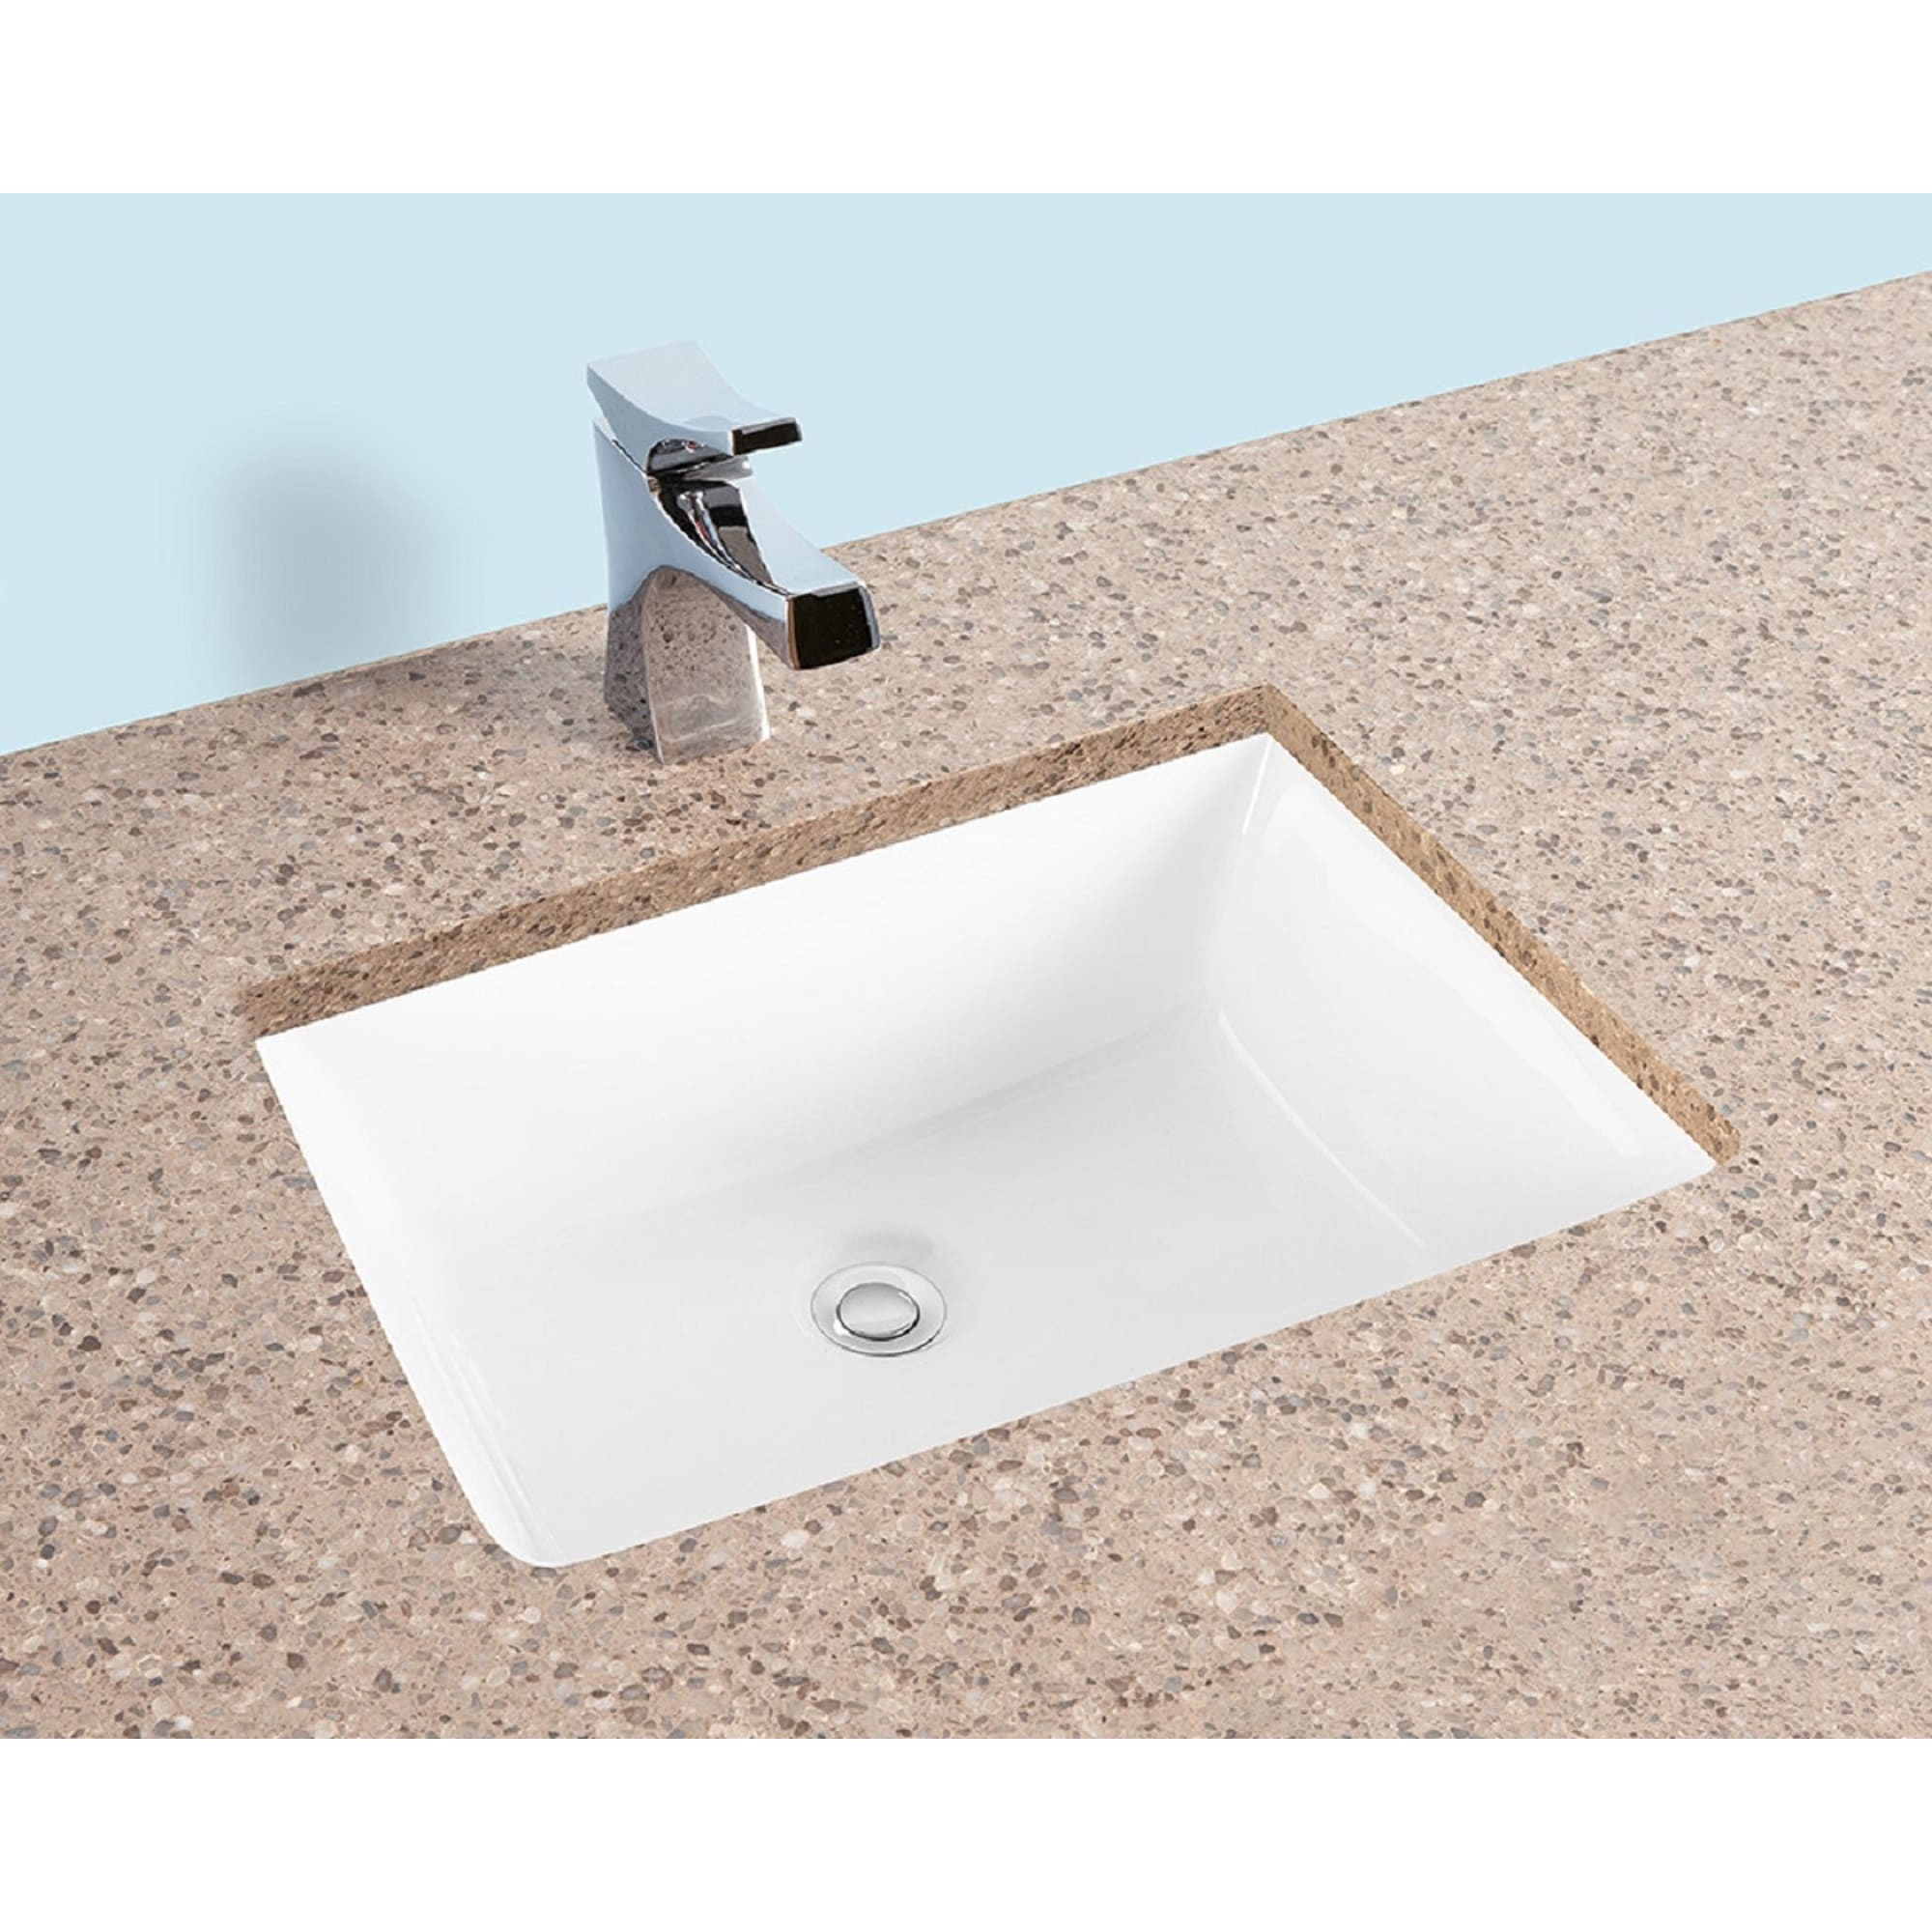 Fiore 2015 20 X15 Rectangle Undermount Bathroom Sink W Concealed Overflow Hole Modern Porcelain Ceramic Lavatory White Overstock 31422668